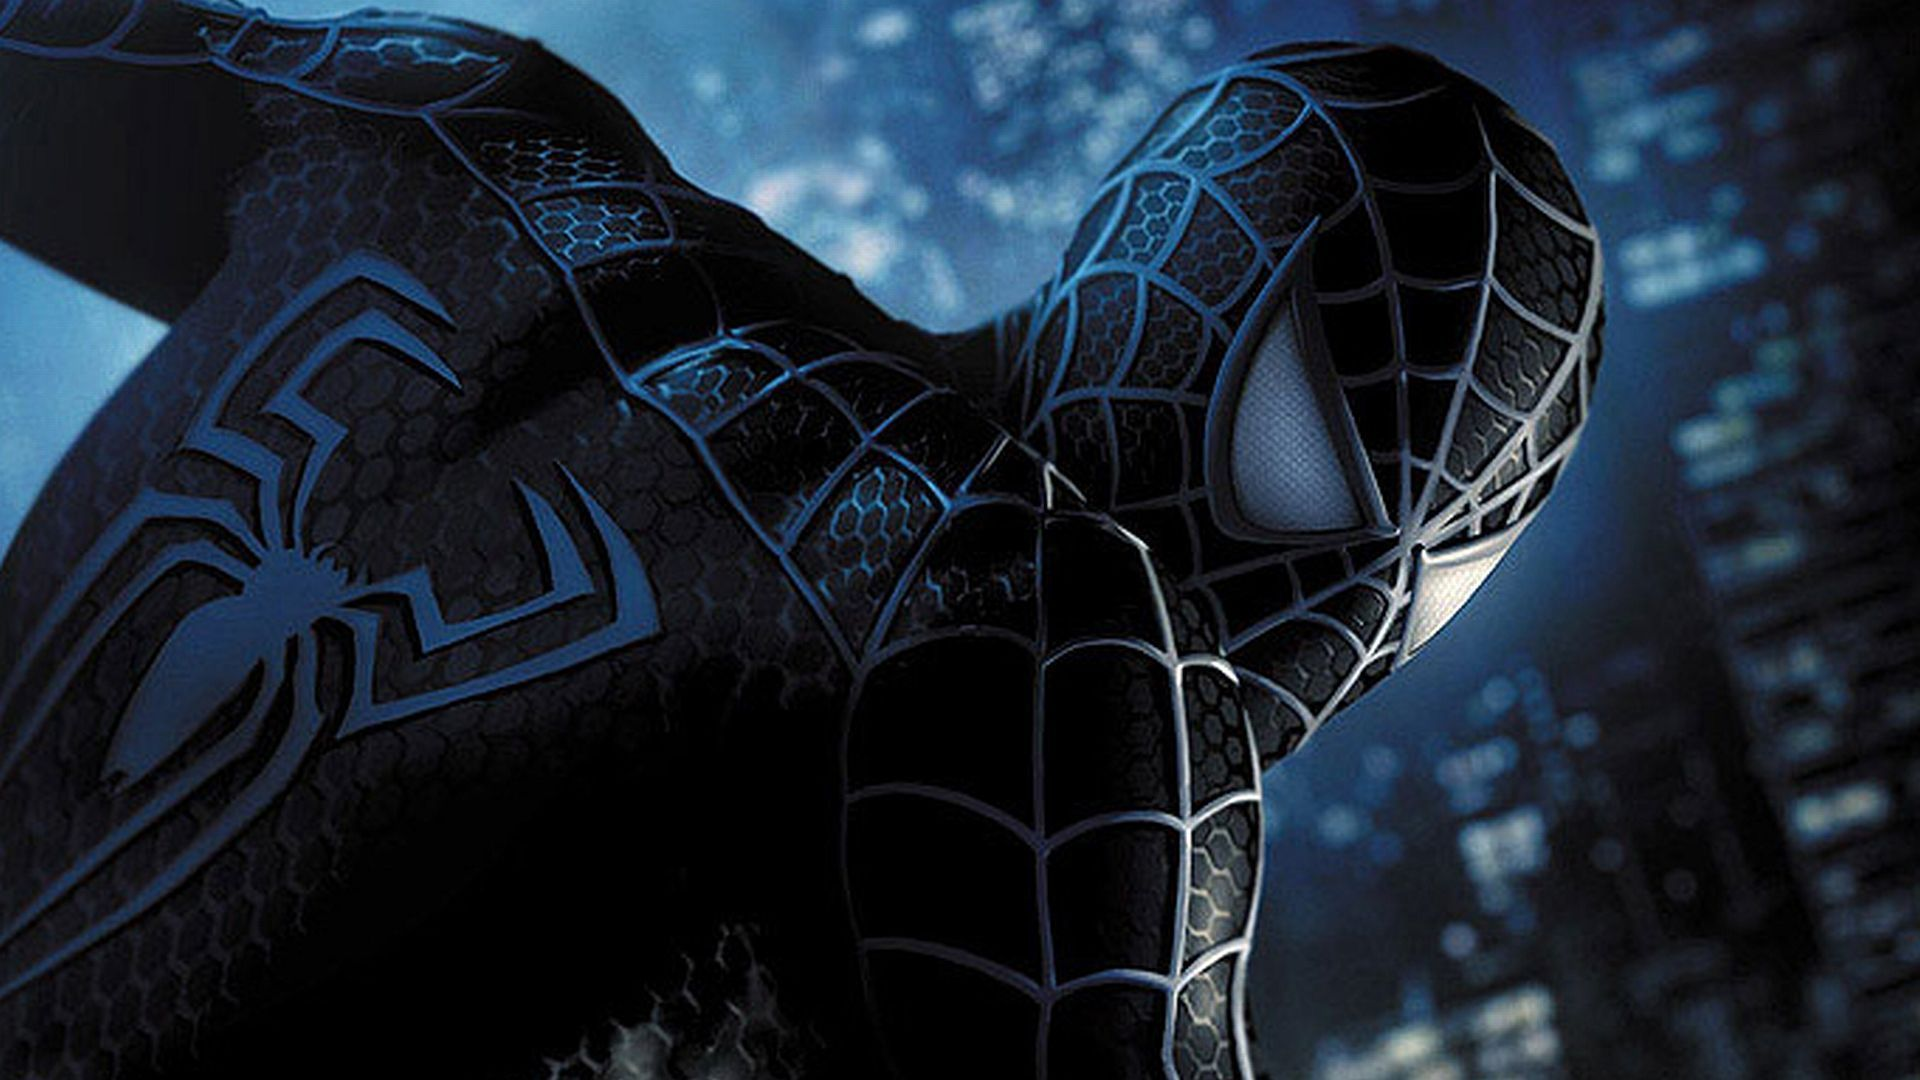 Black Spiderman Wallpapers Top Free Black Spiderman Backgrounds Wallpaperaccess